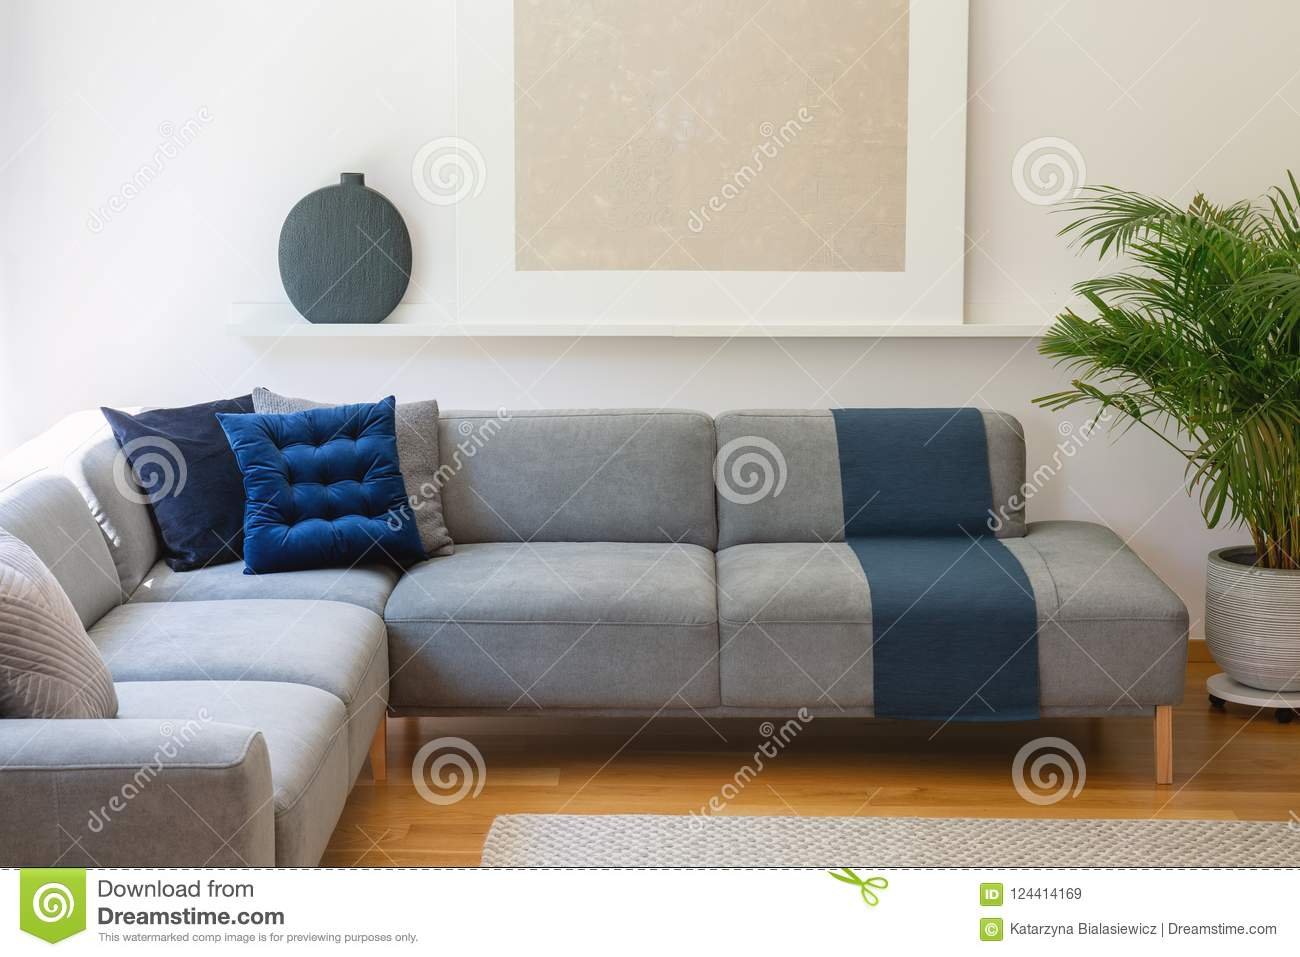 Blue Pillows On Grey Corner Couch In Living Room Interior